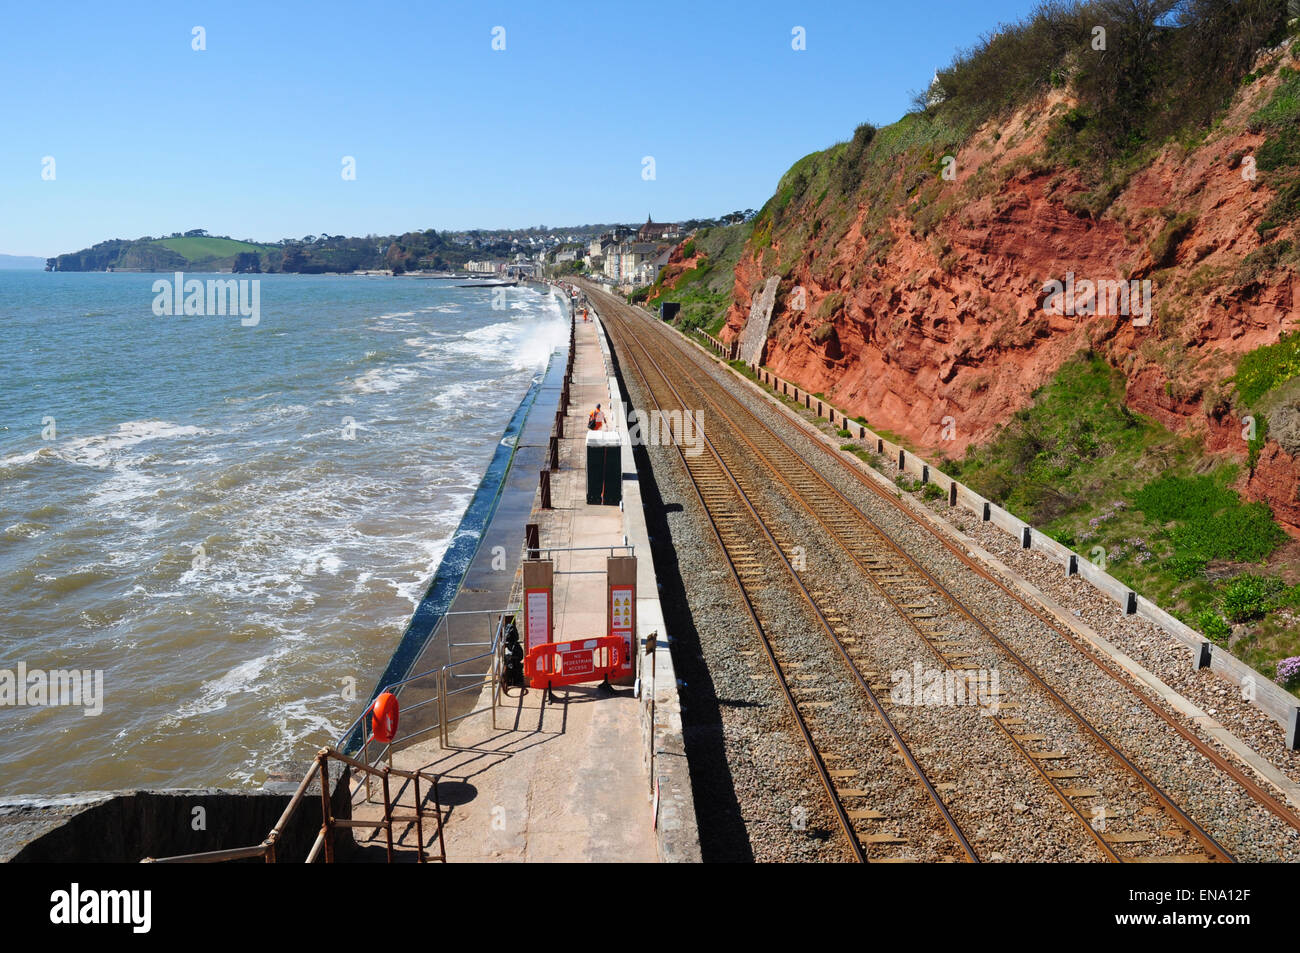 Main railway line and red rock cliff face along the coast looking west to Dawlish, Devon, England, UK - Stock Image